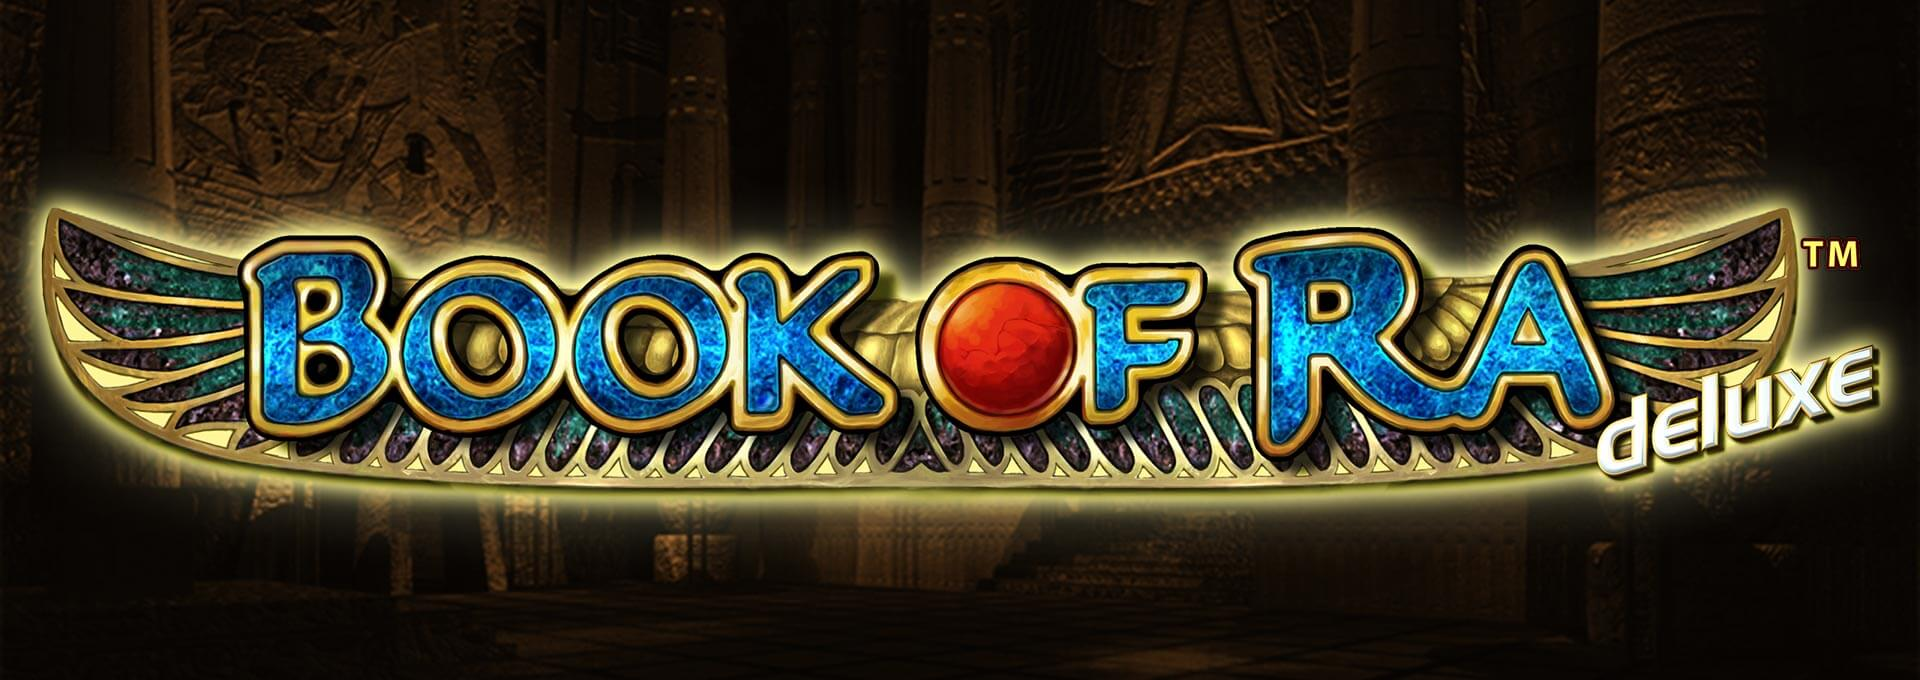 cleopatra online slot the book of ra